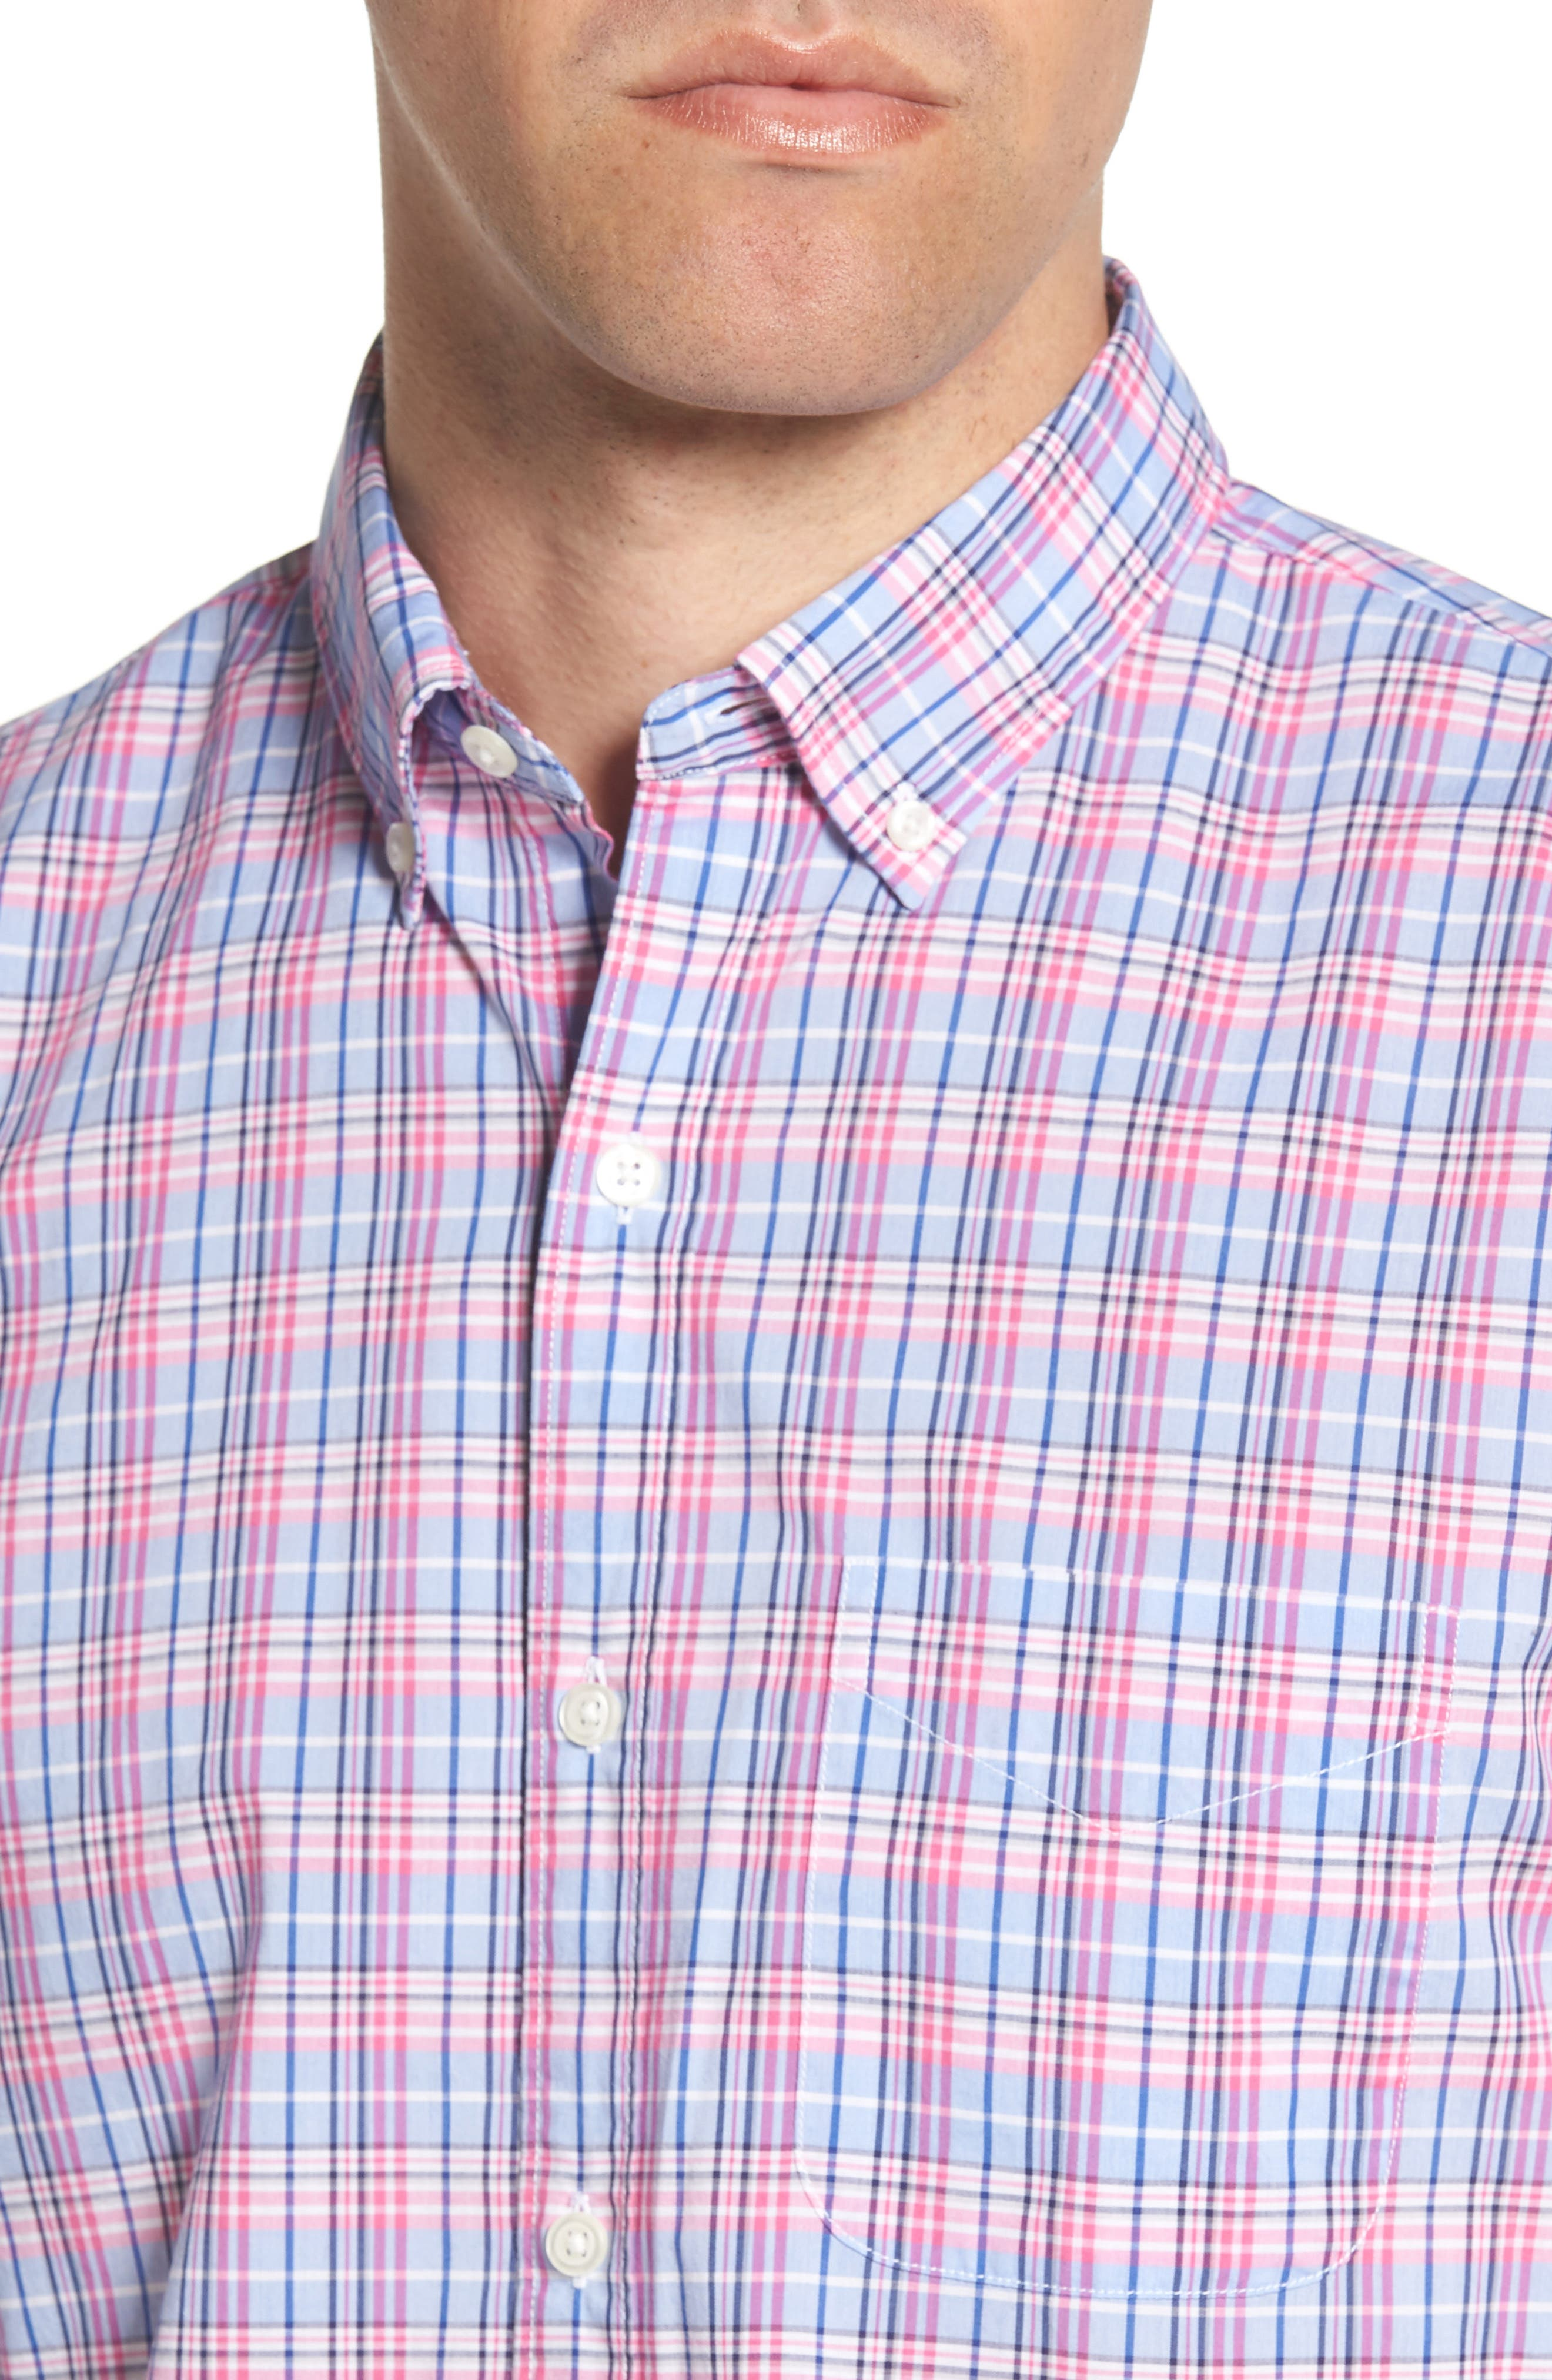 Summerweight Slim Fit Plaid Sport Shirt,                             Alternate thumbnail 2, color,                             Basswood Plaid - Pink Rocket